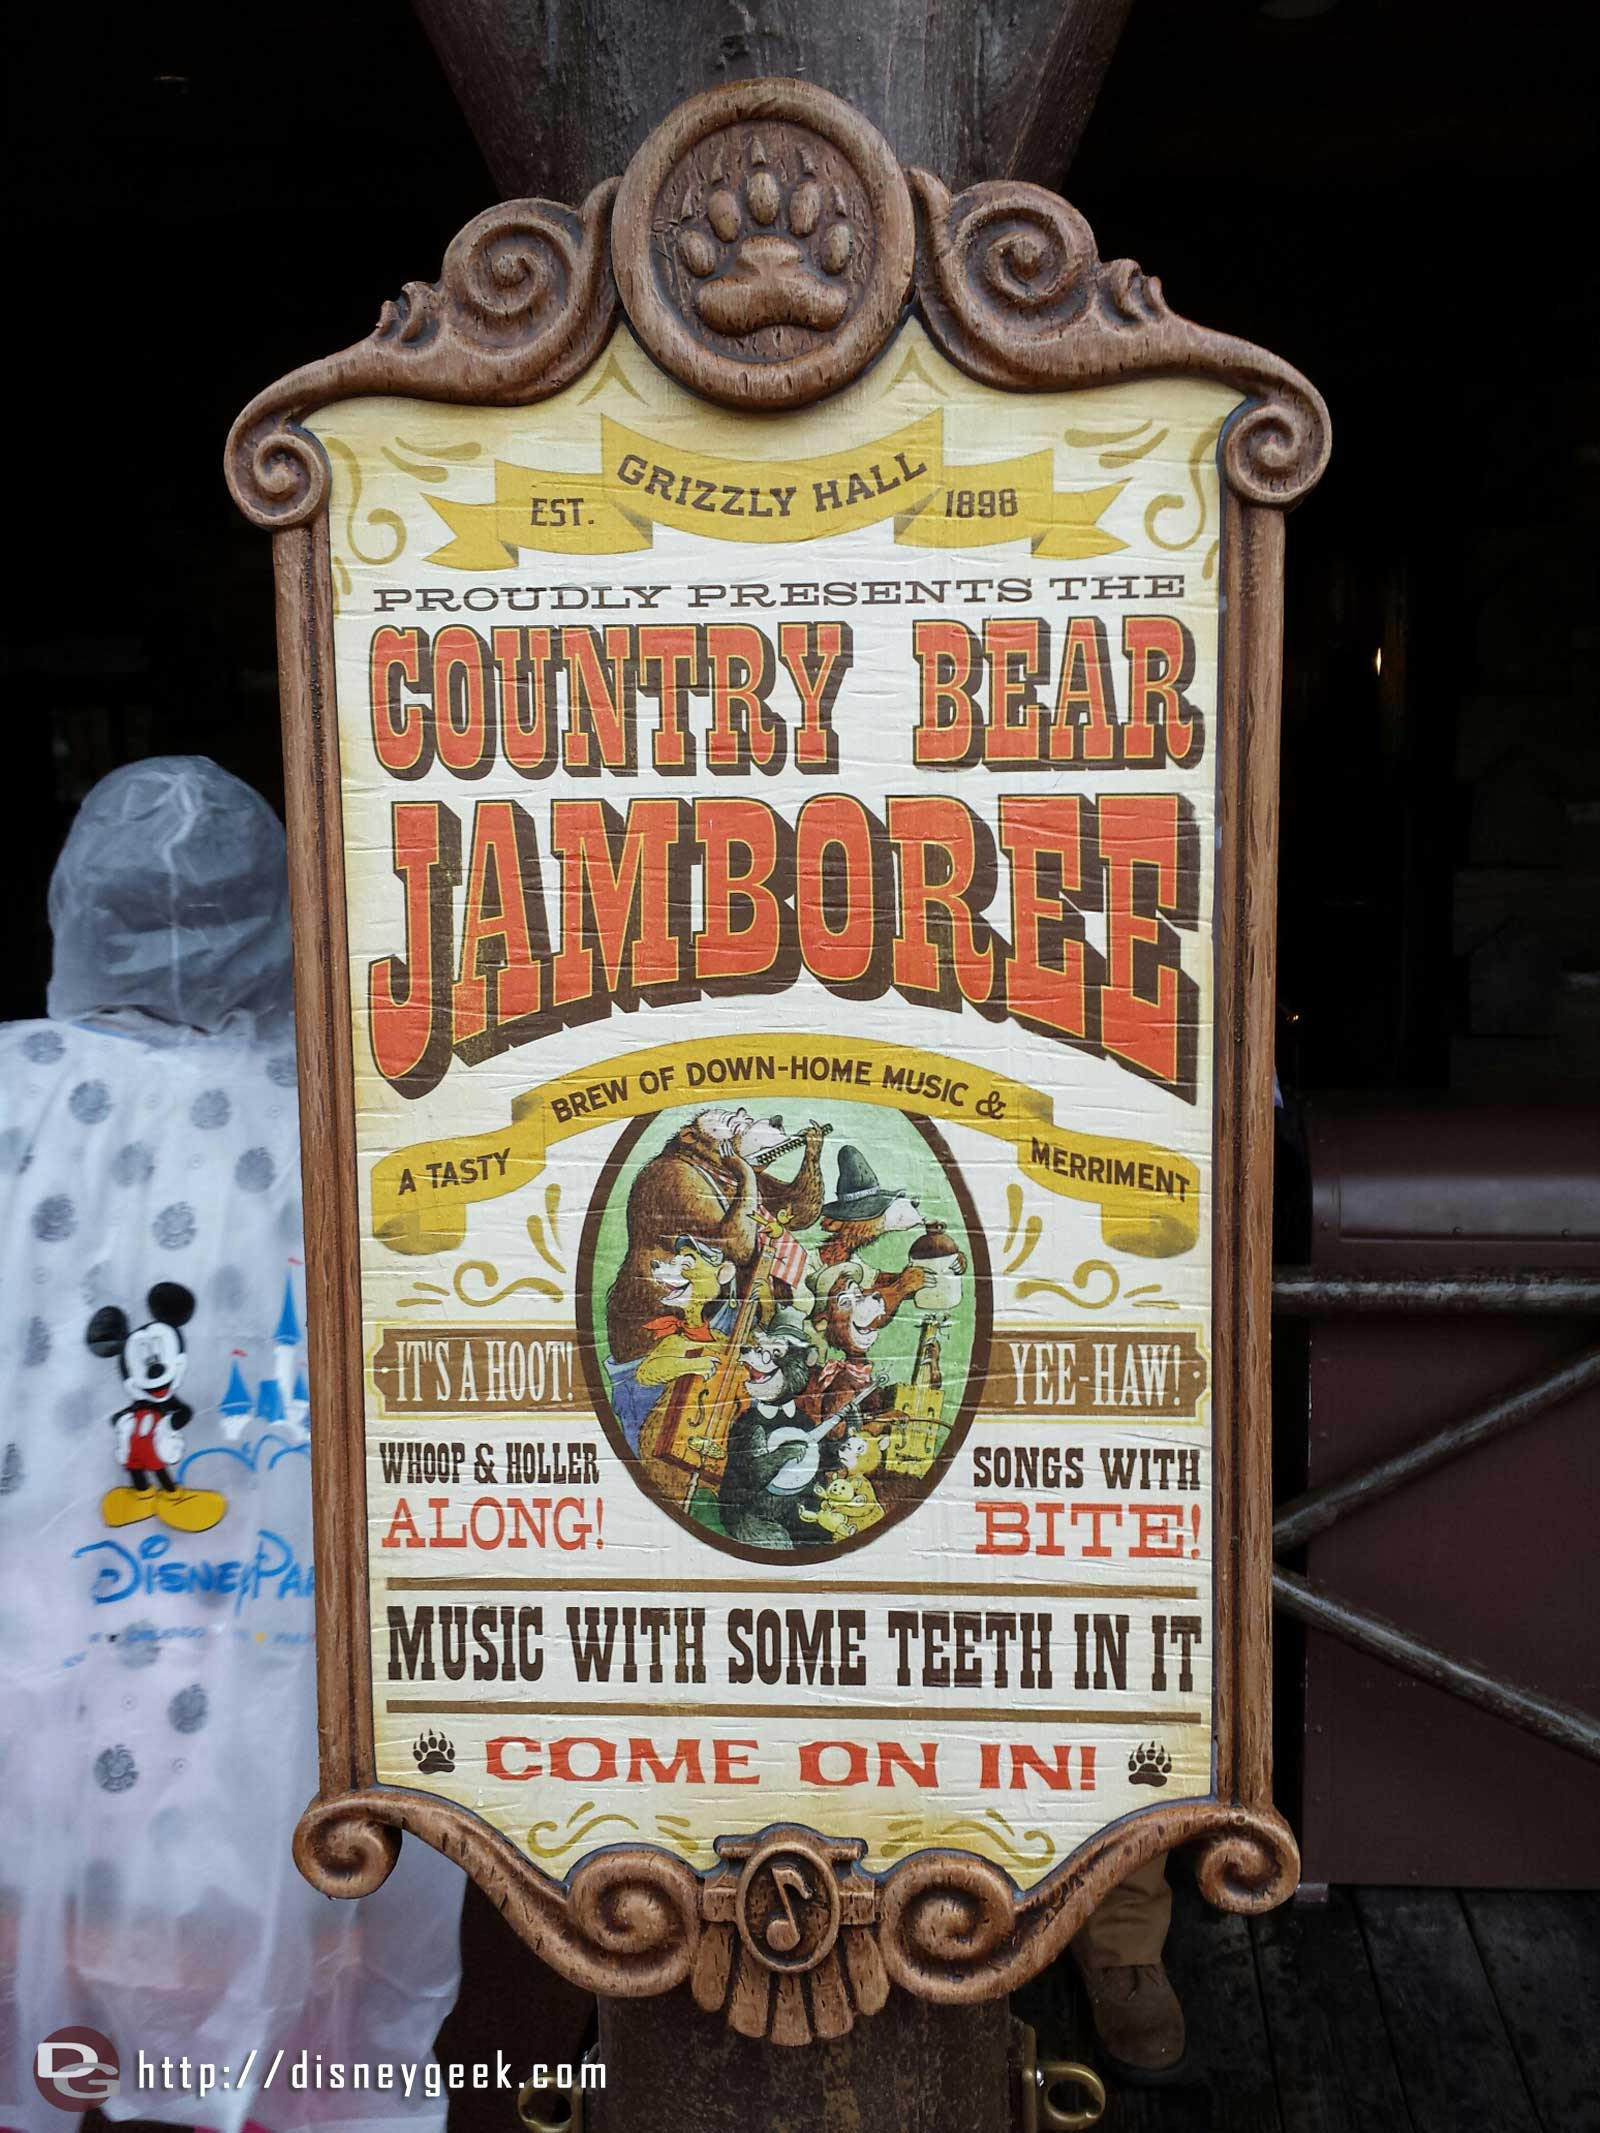 Time for the Country Bear Jamboree